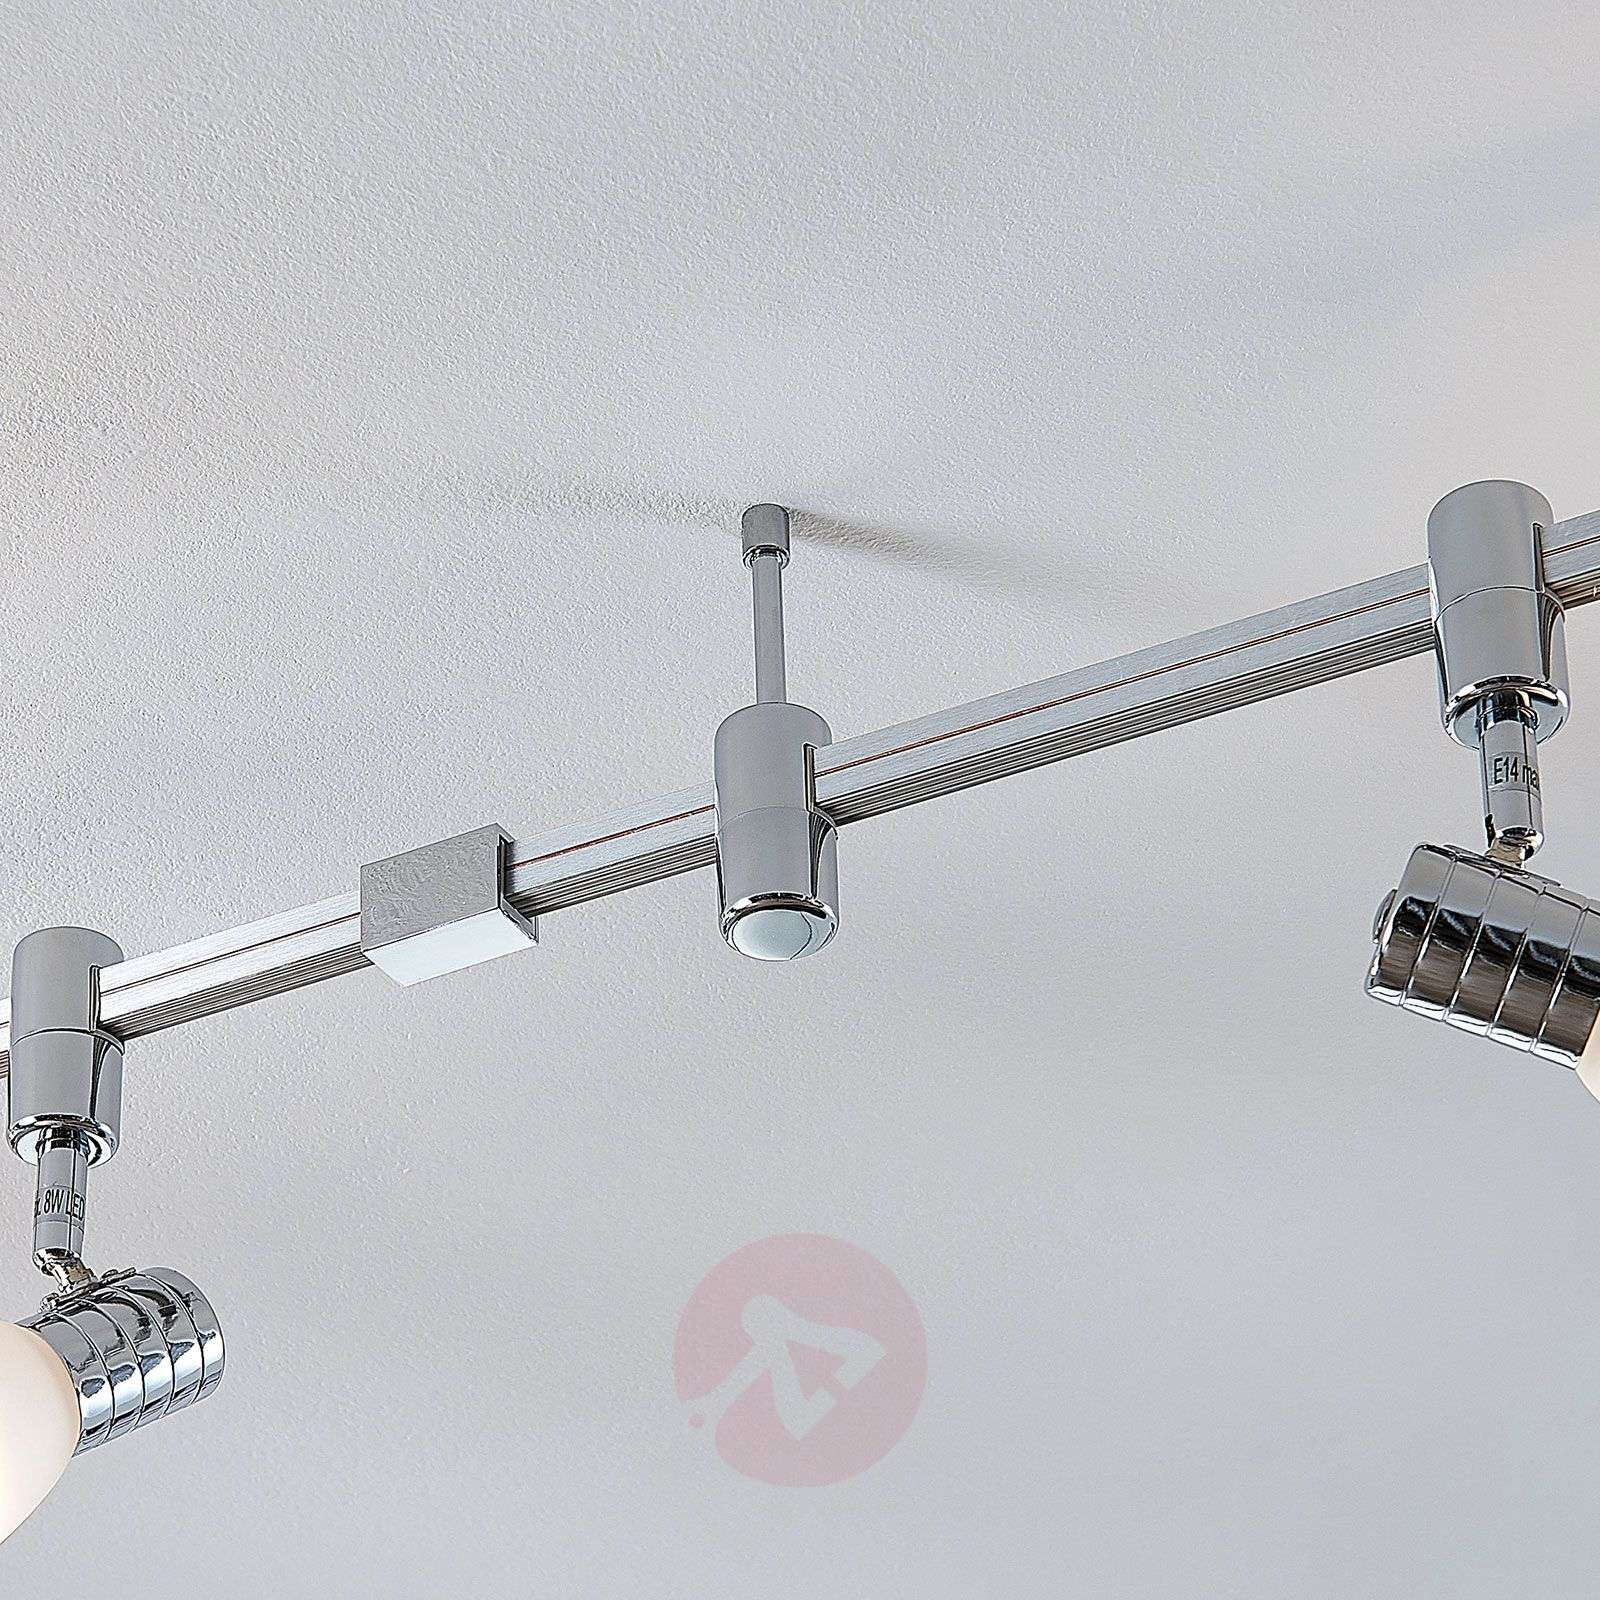 LED hoogvolt railsysteem Anjur, E14-3035035-02